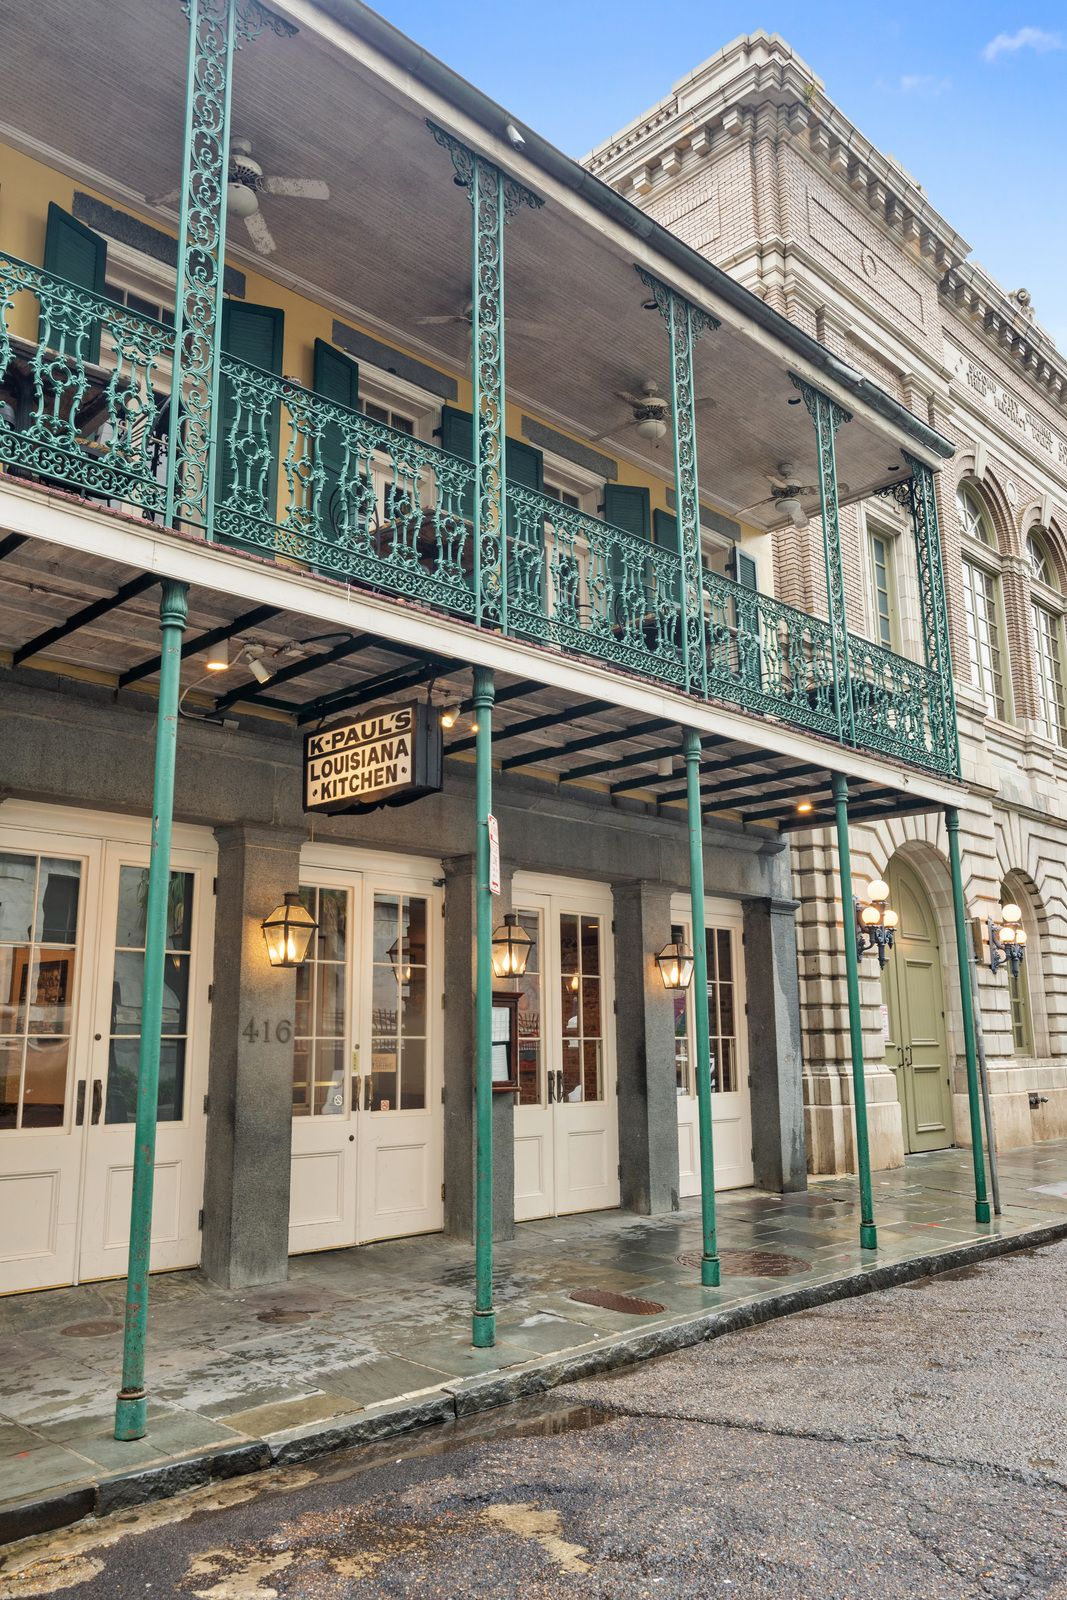 Internationally Renowned New Orleans Restaurant To Cease